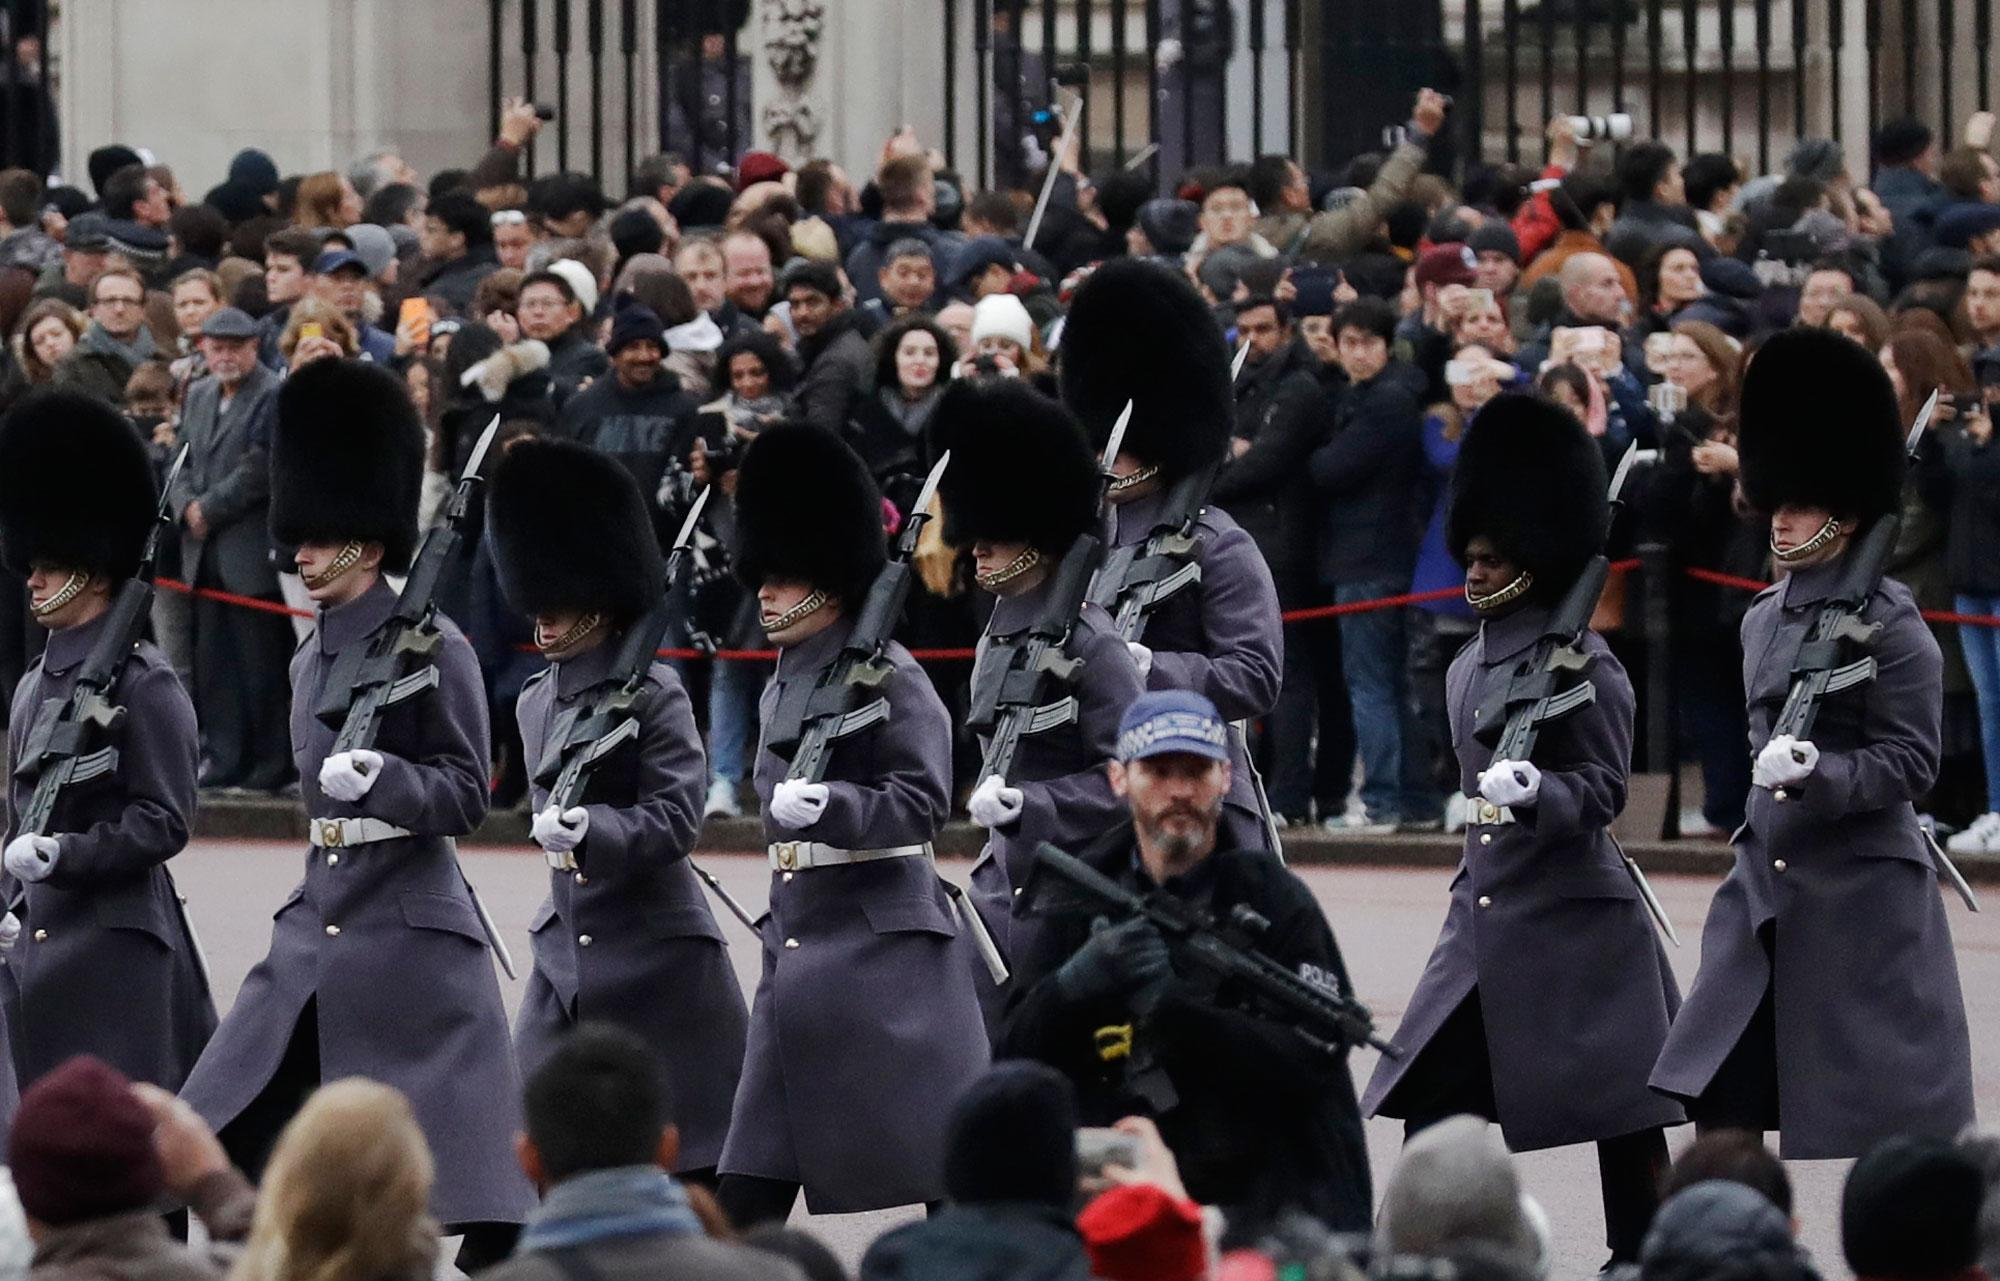 <p>An armed police officer stands guard in the foreground as members of the British military march past, during the Changing the Guard ceremony outside Buckingham Palace in London, Wednesday, Dec. 21, 2016. London police on Wednesday instituted road closures in the area surrounding Buckingham Palace for nearly two hours while the popular Changing the Guard military ceremony was taking place — a security measure rushed into place because of the deadly Christmas market truck attack in Berlin. (Photo: Matt Dunham/AP) </p>